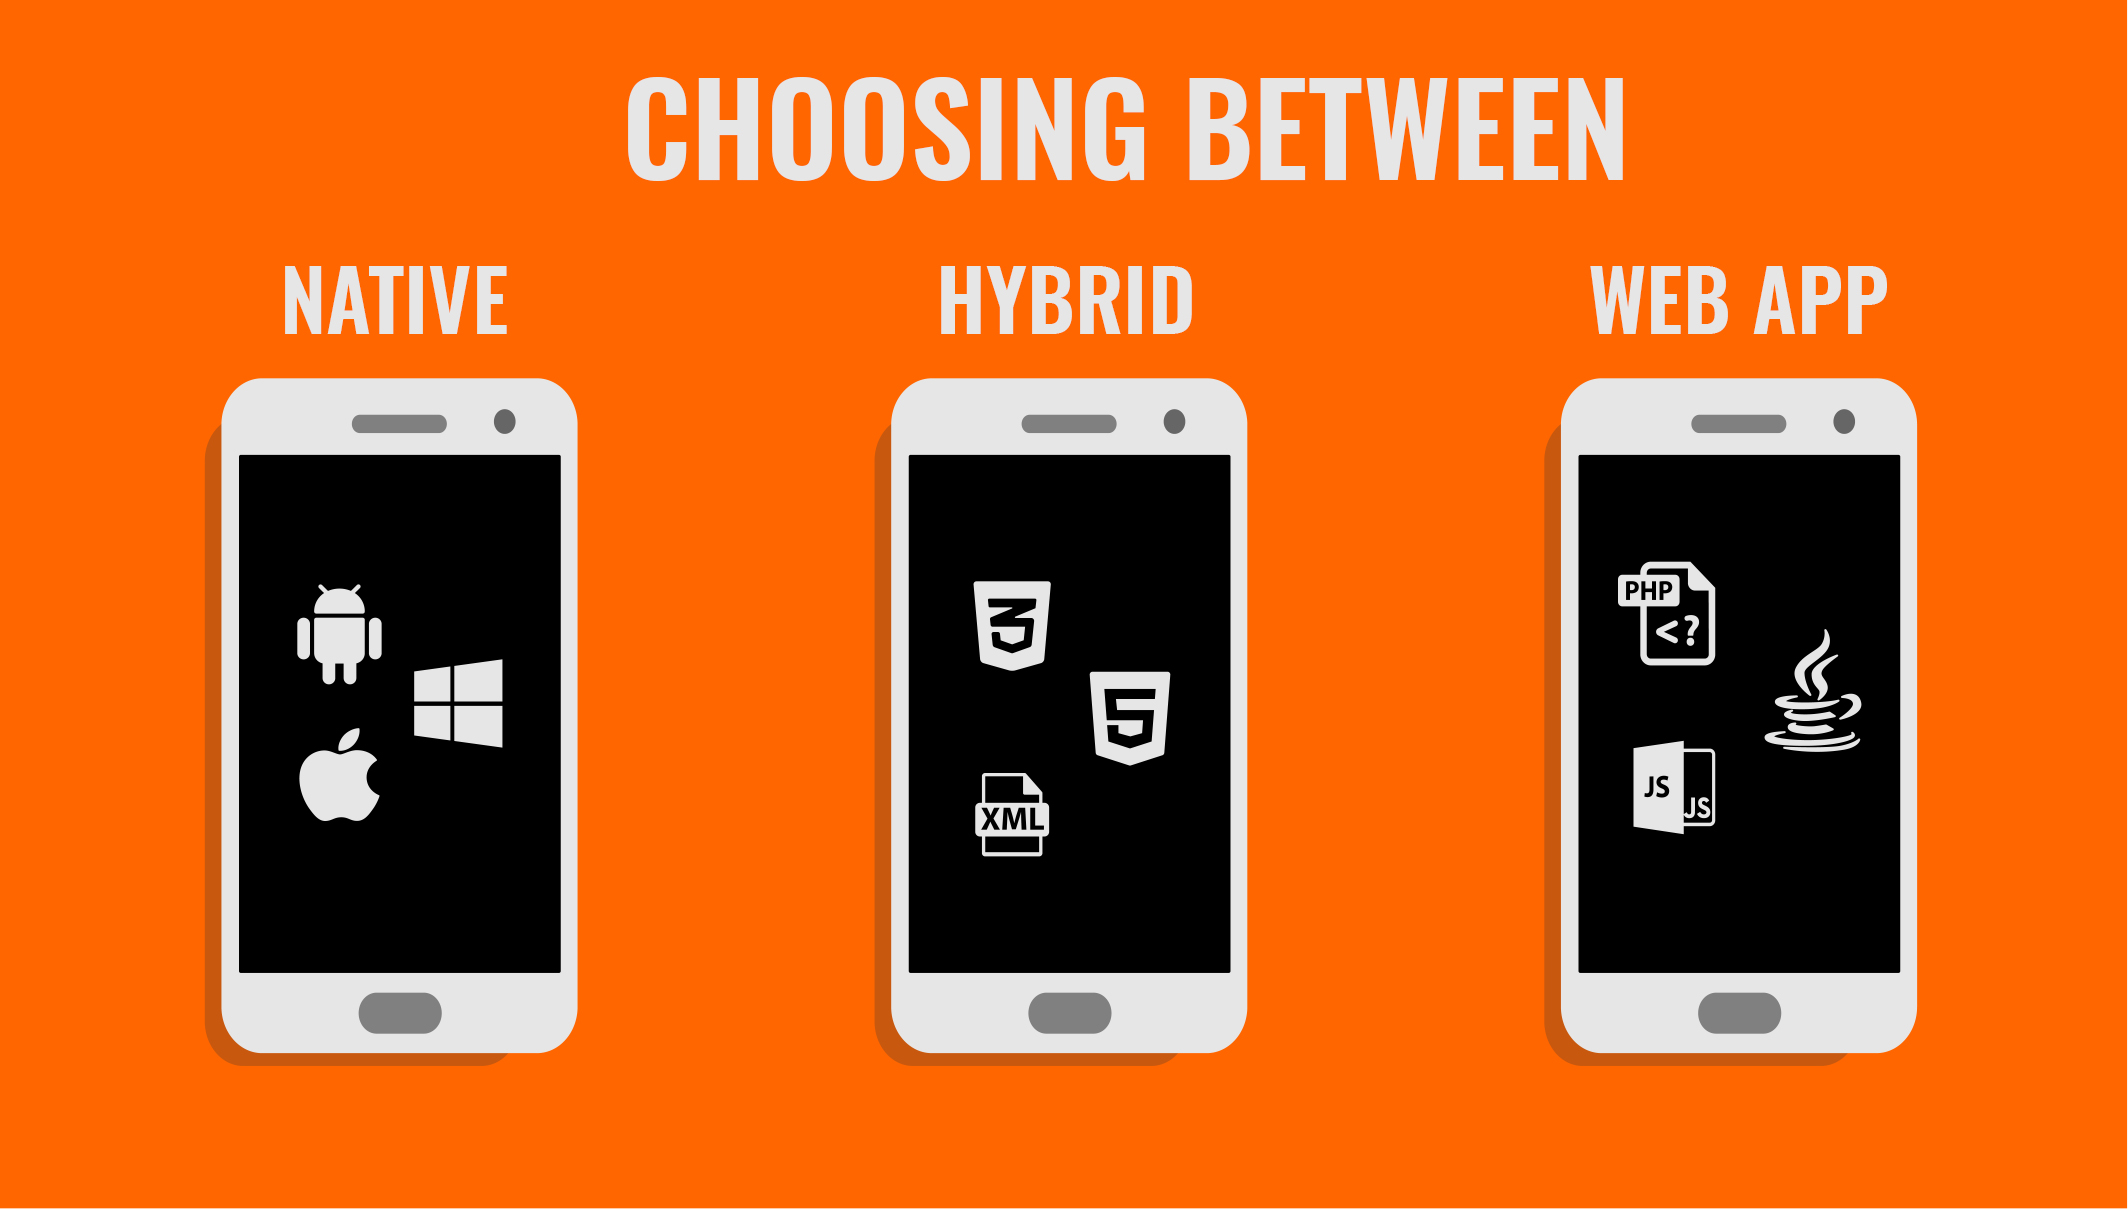 Web app or hybrid app? No thanks. Why are native apps the best?